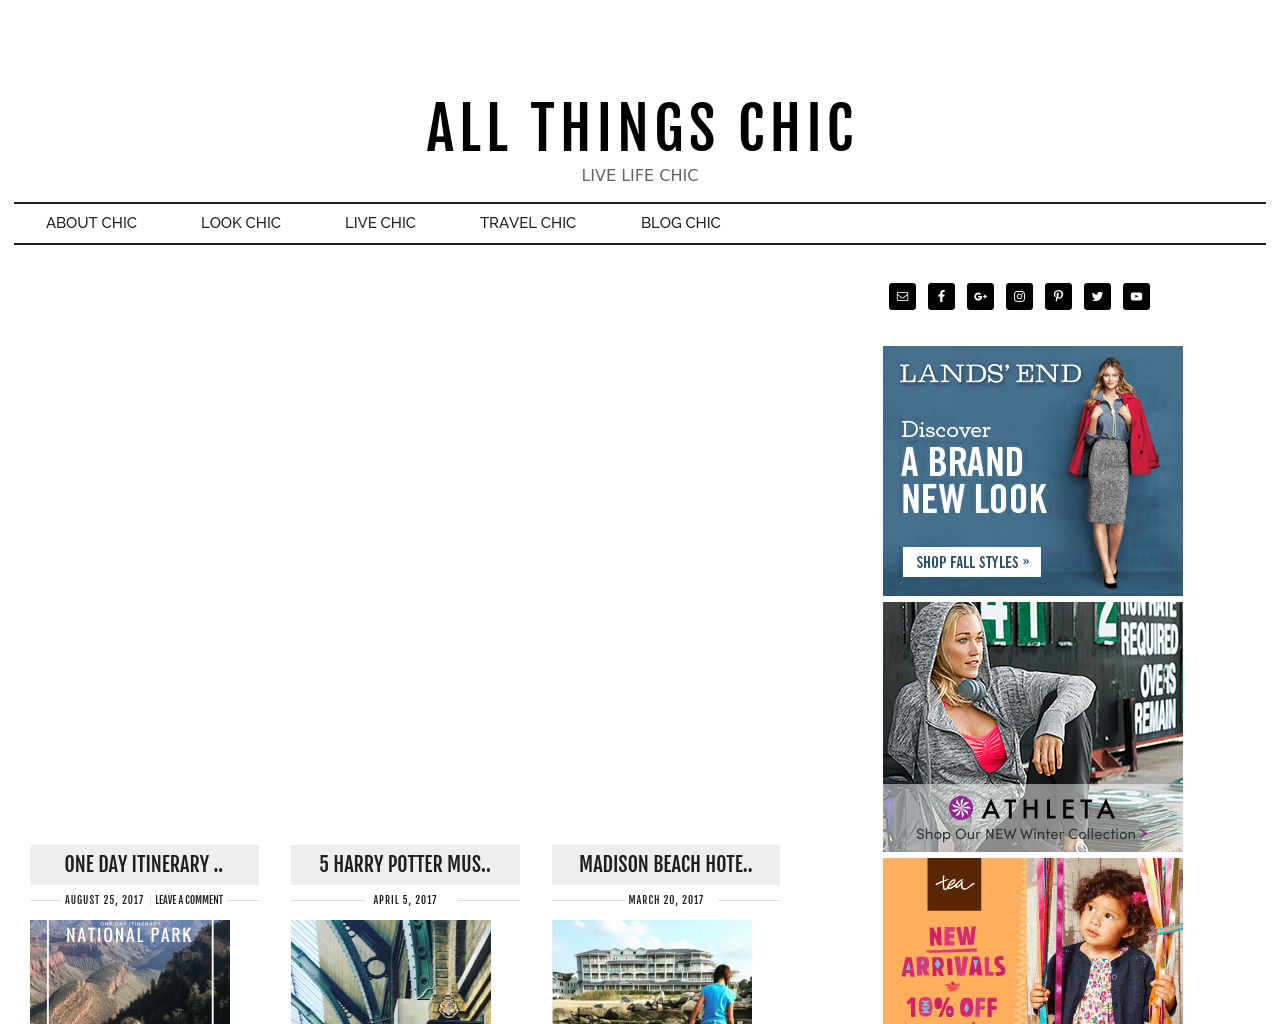 All-Things-Chic-Advertising-Reviews-Pricing